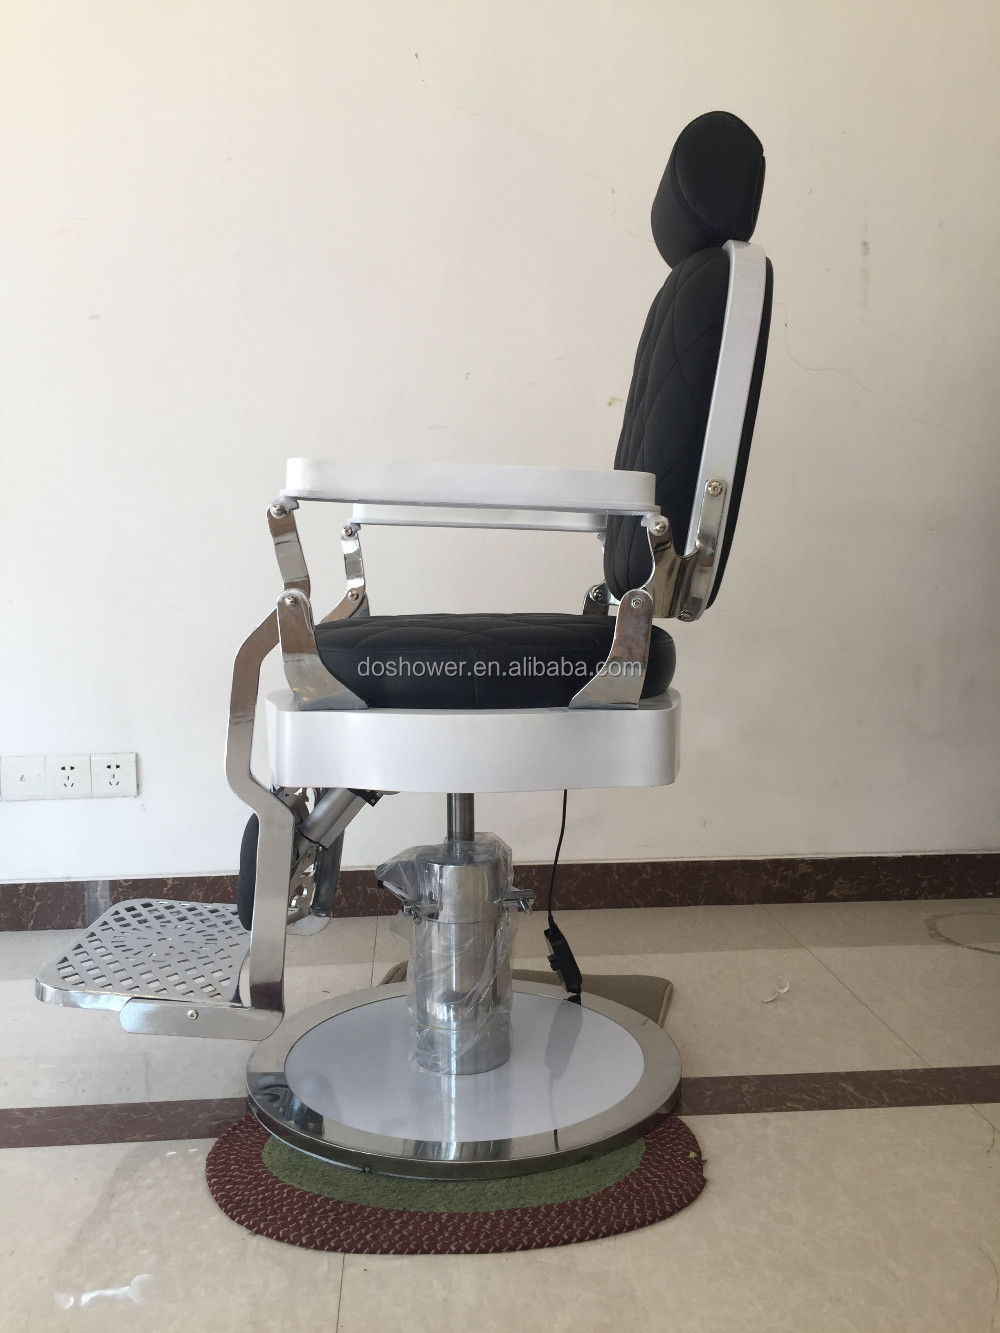 Barber chairs and stations - Doshower Antique Barber Chairs Barber Stations